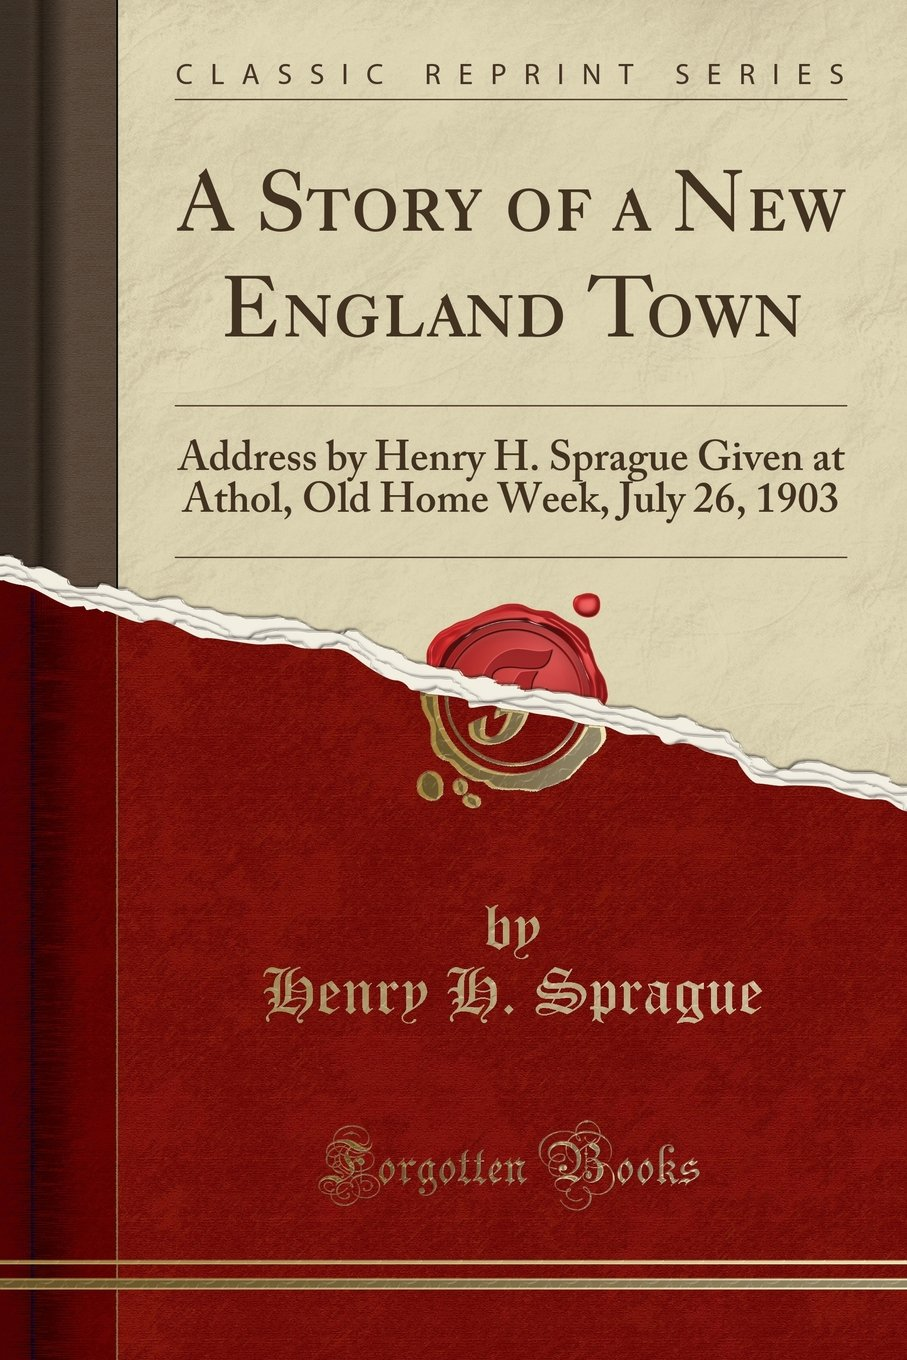 Download A Story of a New England Town: Address by Henry H. Sprague Given at Athol, Old Home Week, July 26, 1903 (Classic Reprint) ebook